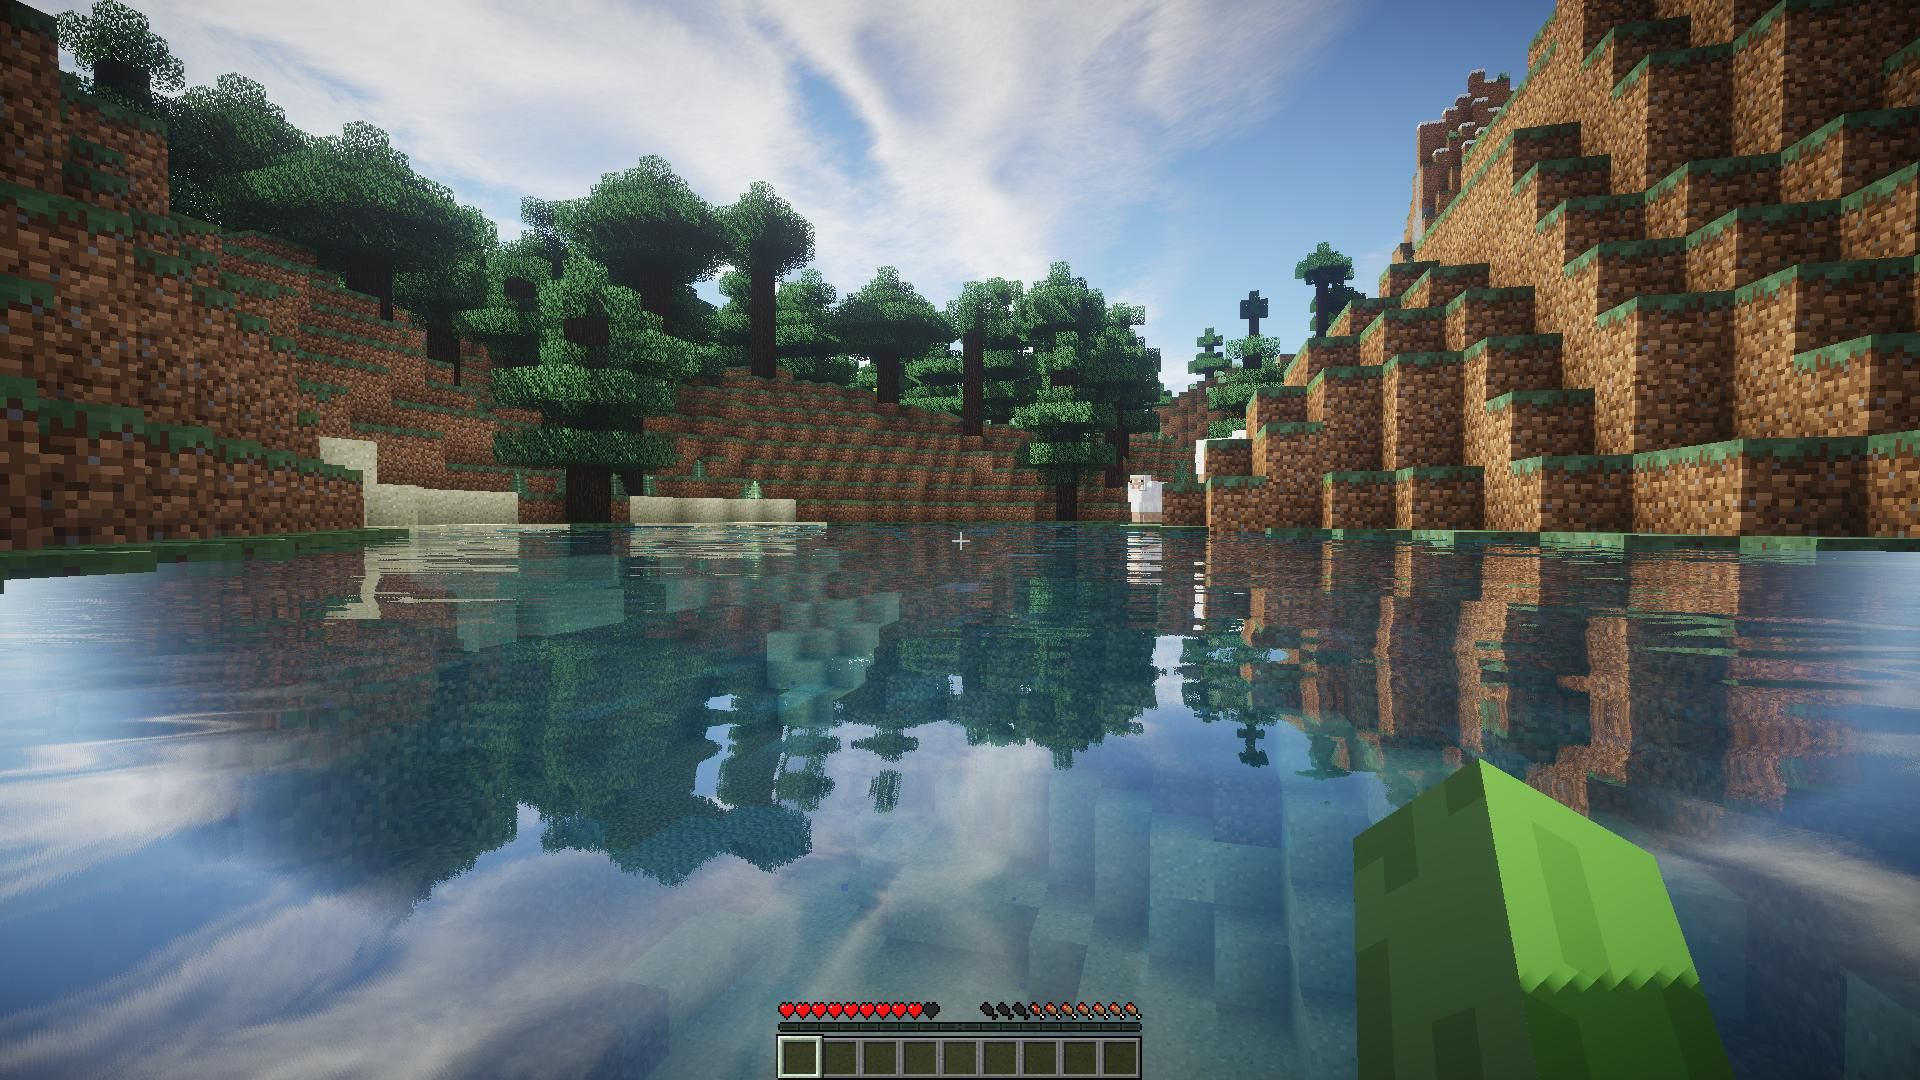 Download Minecraft Mod Texture Pack - Games Guide Blog